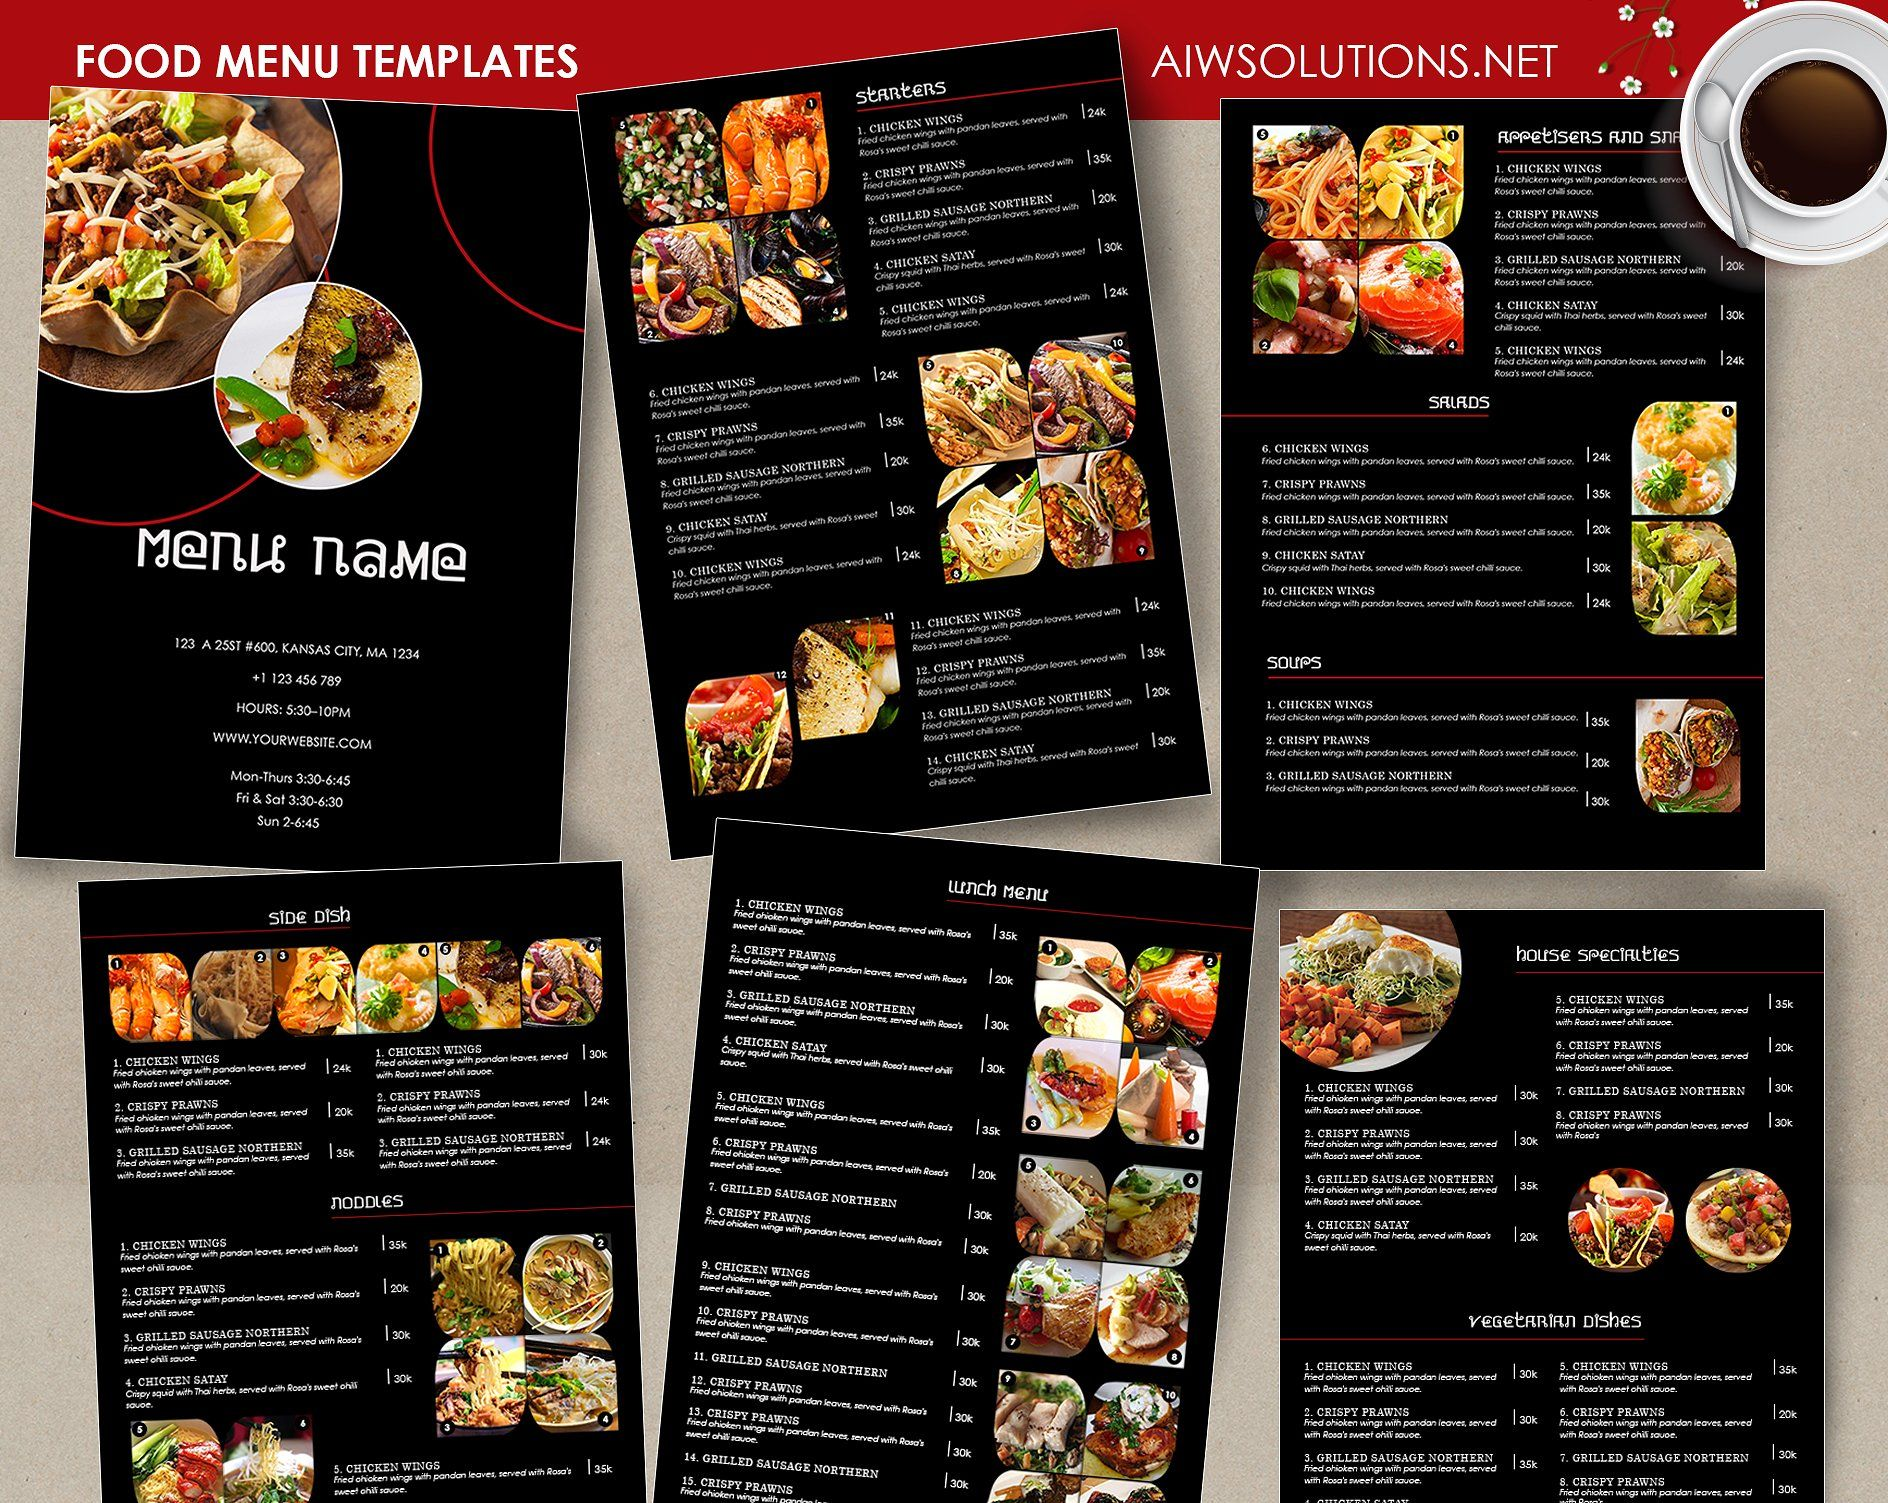 Food Menu TemplateId By Aiwsolutions On Creativemarket  Menu